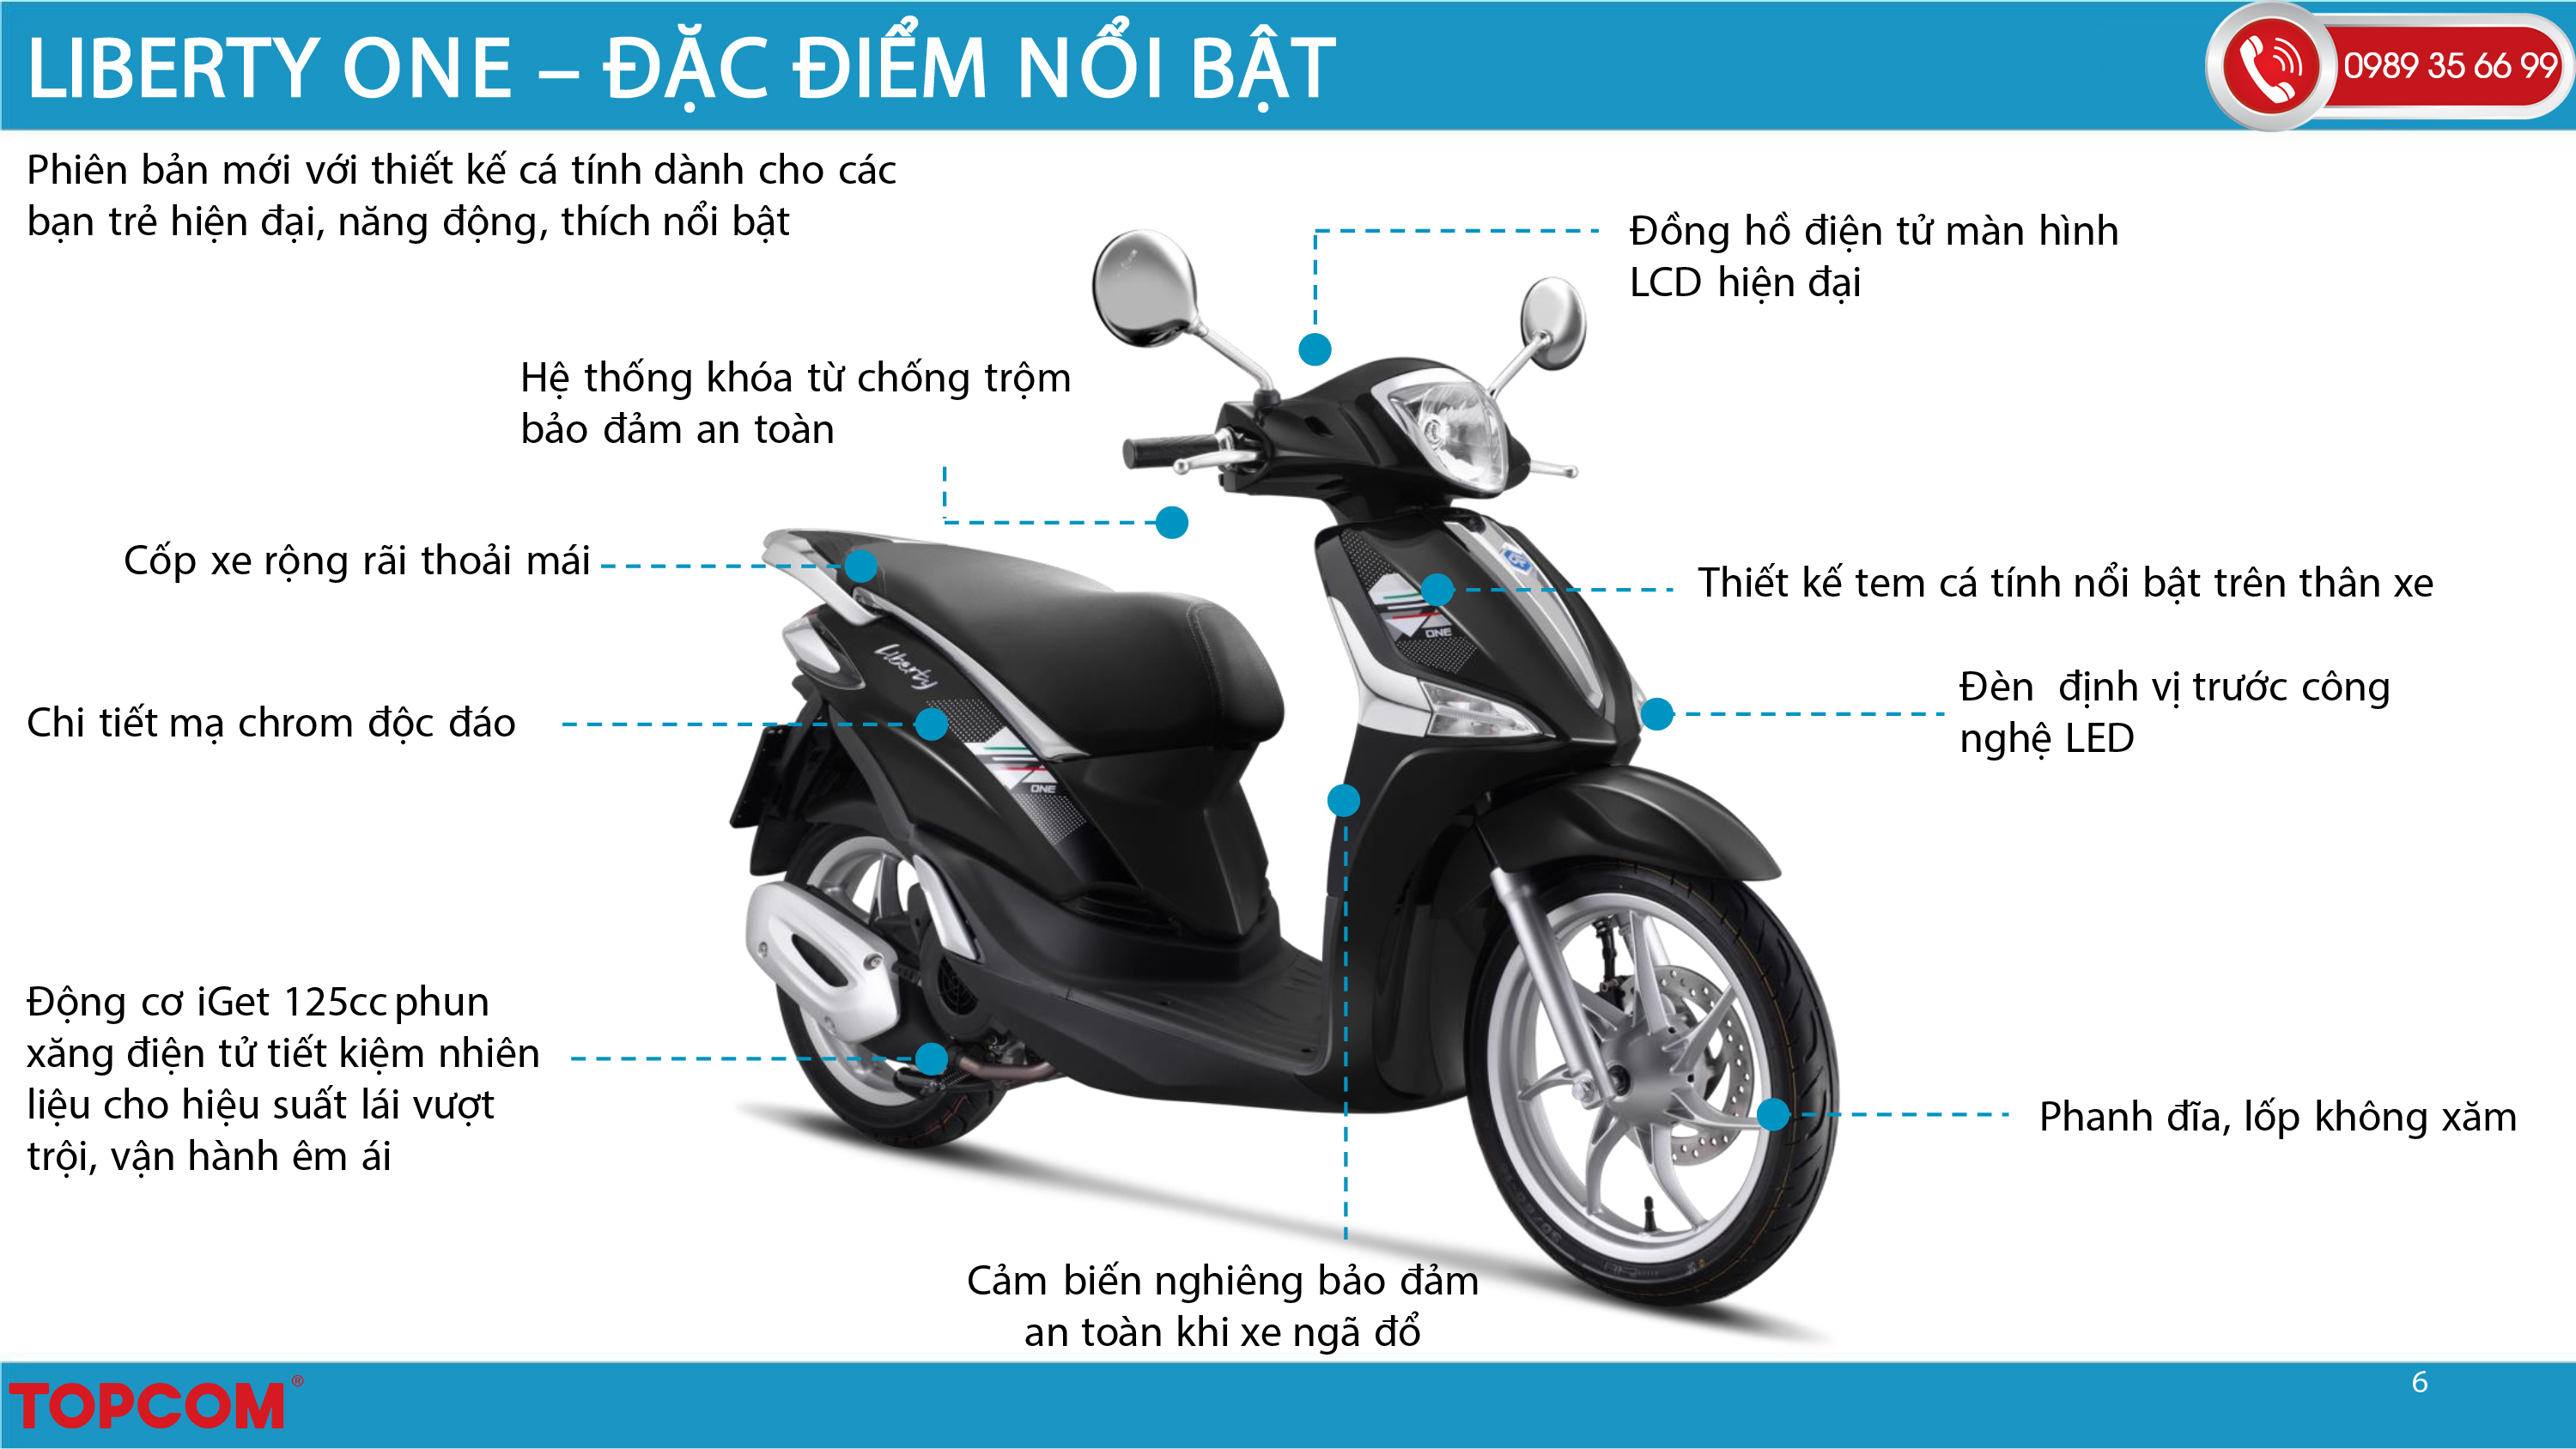 Liberty_one_dac_diem_noi_bat_2